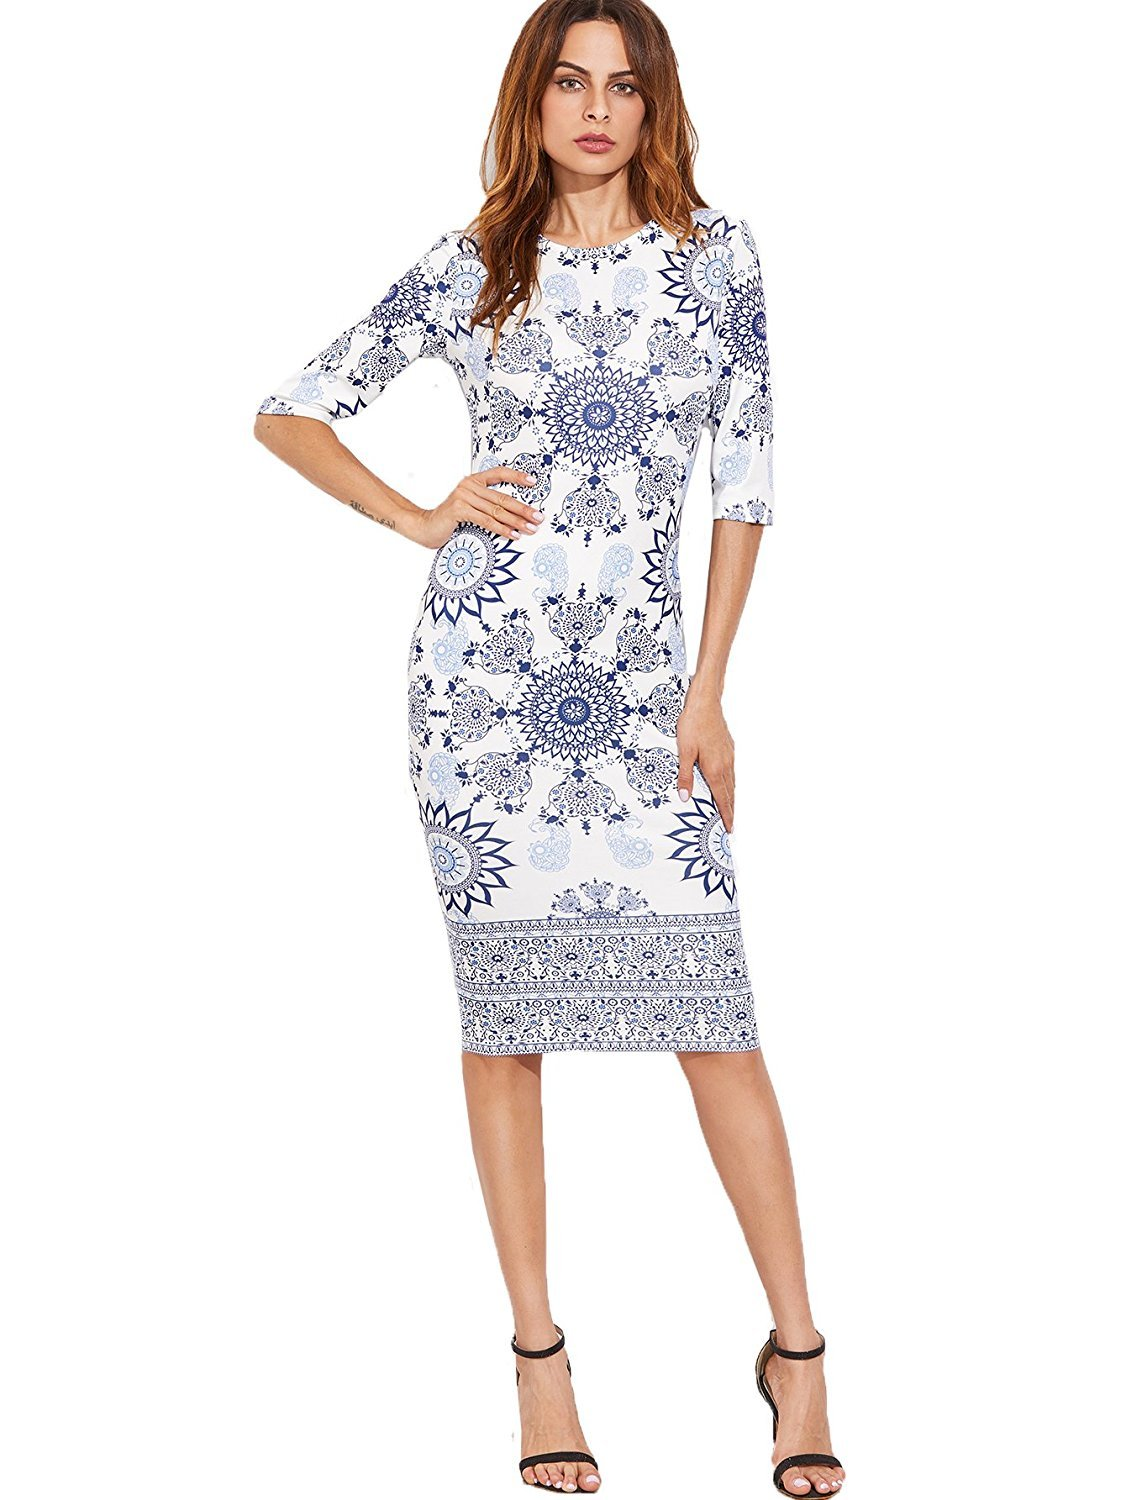 Floerns Women's Porcelain Print Work Sheath Business Pencil Dress Large White-Navy